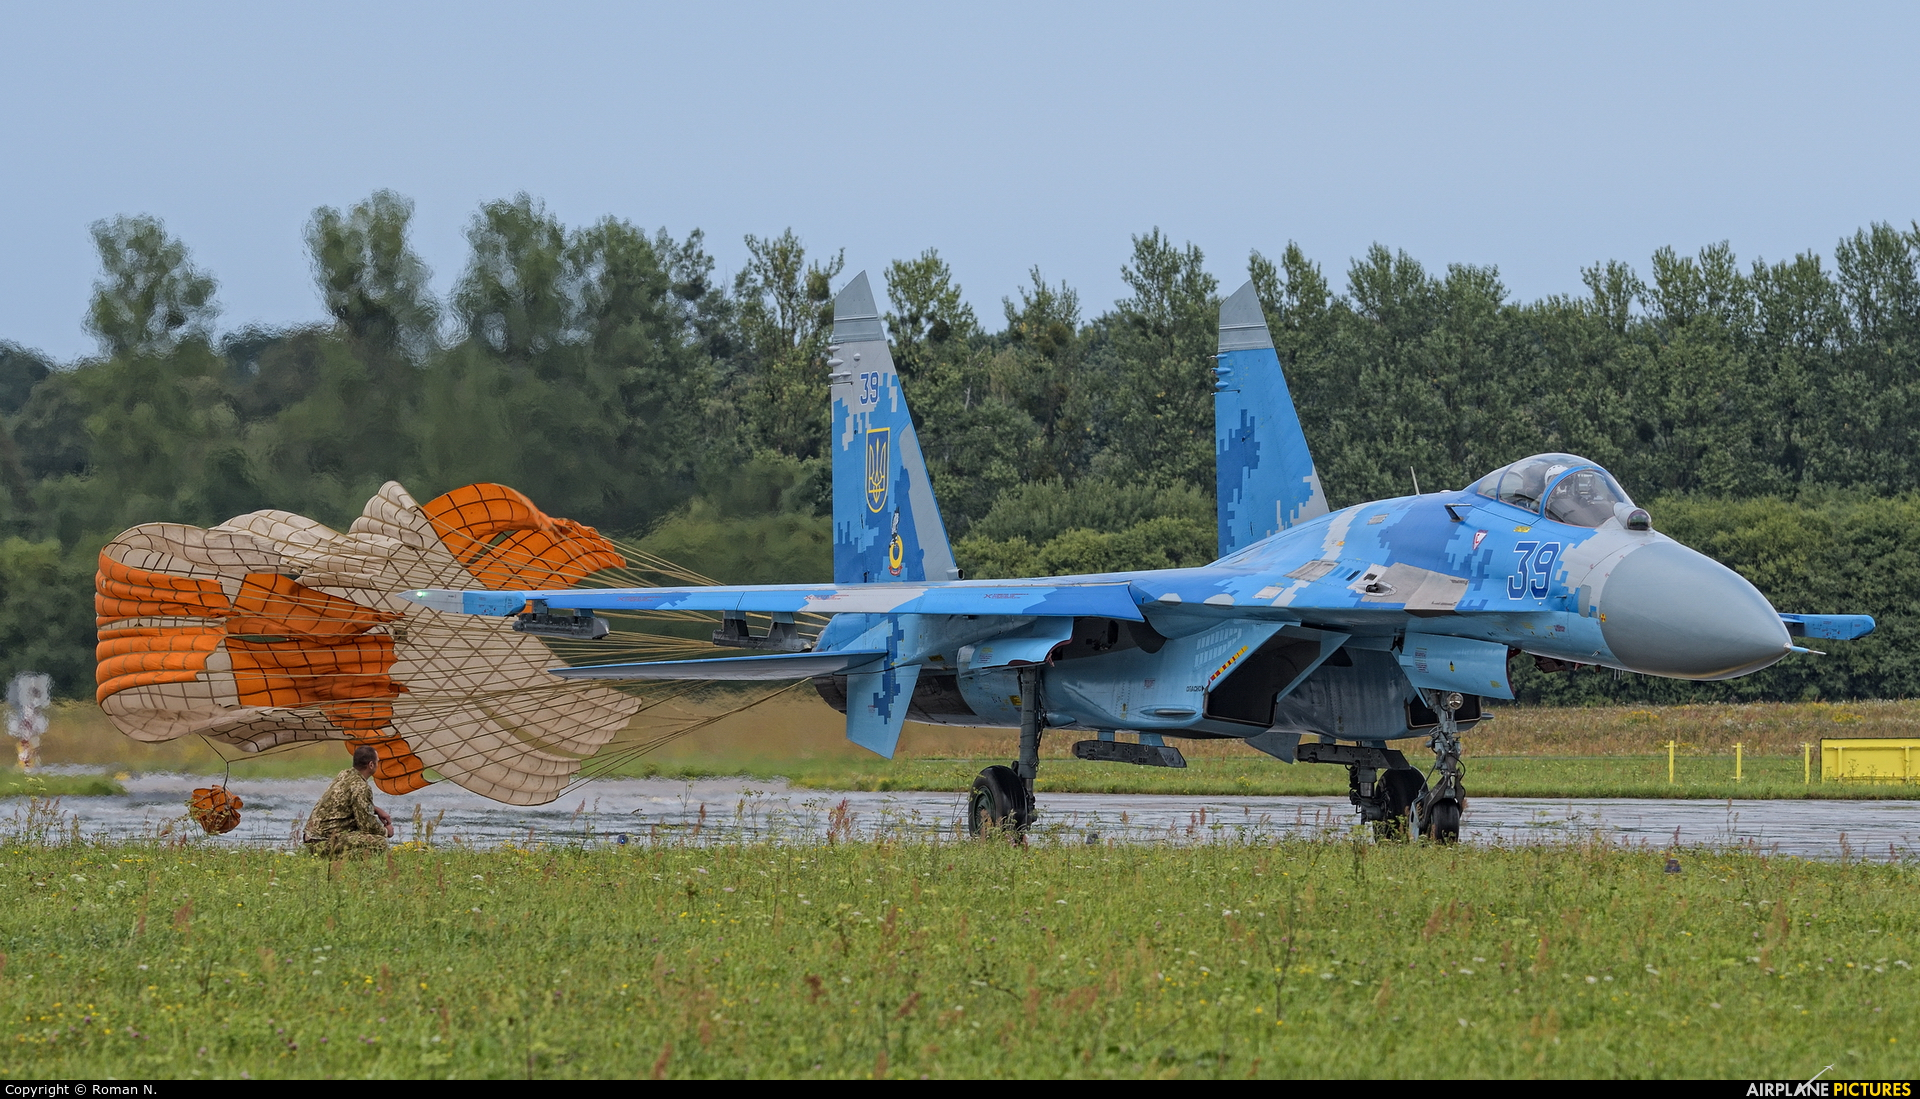 Ukraine - Air Force 39 aircraft at Gdynia- Babie Doły (Oksywie)